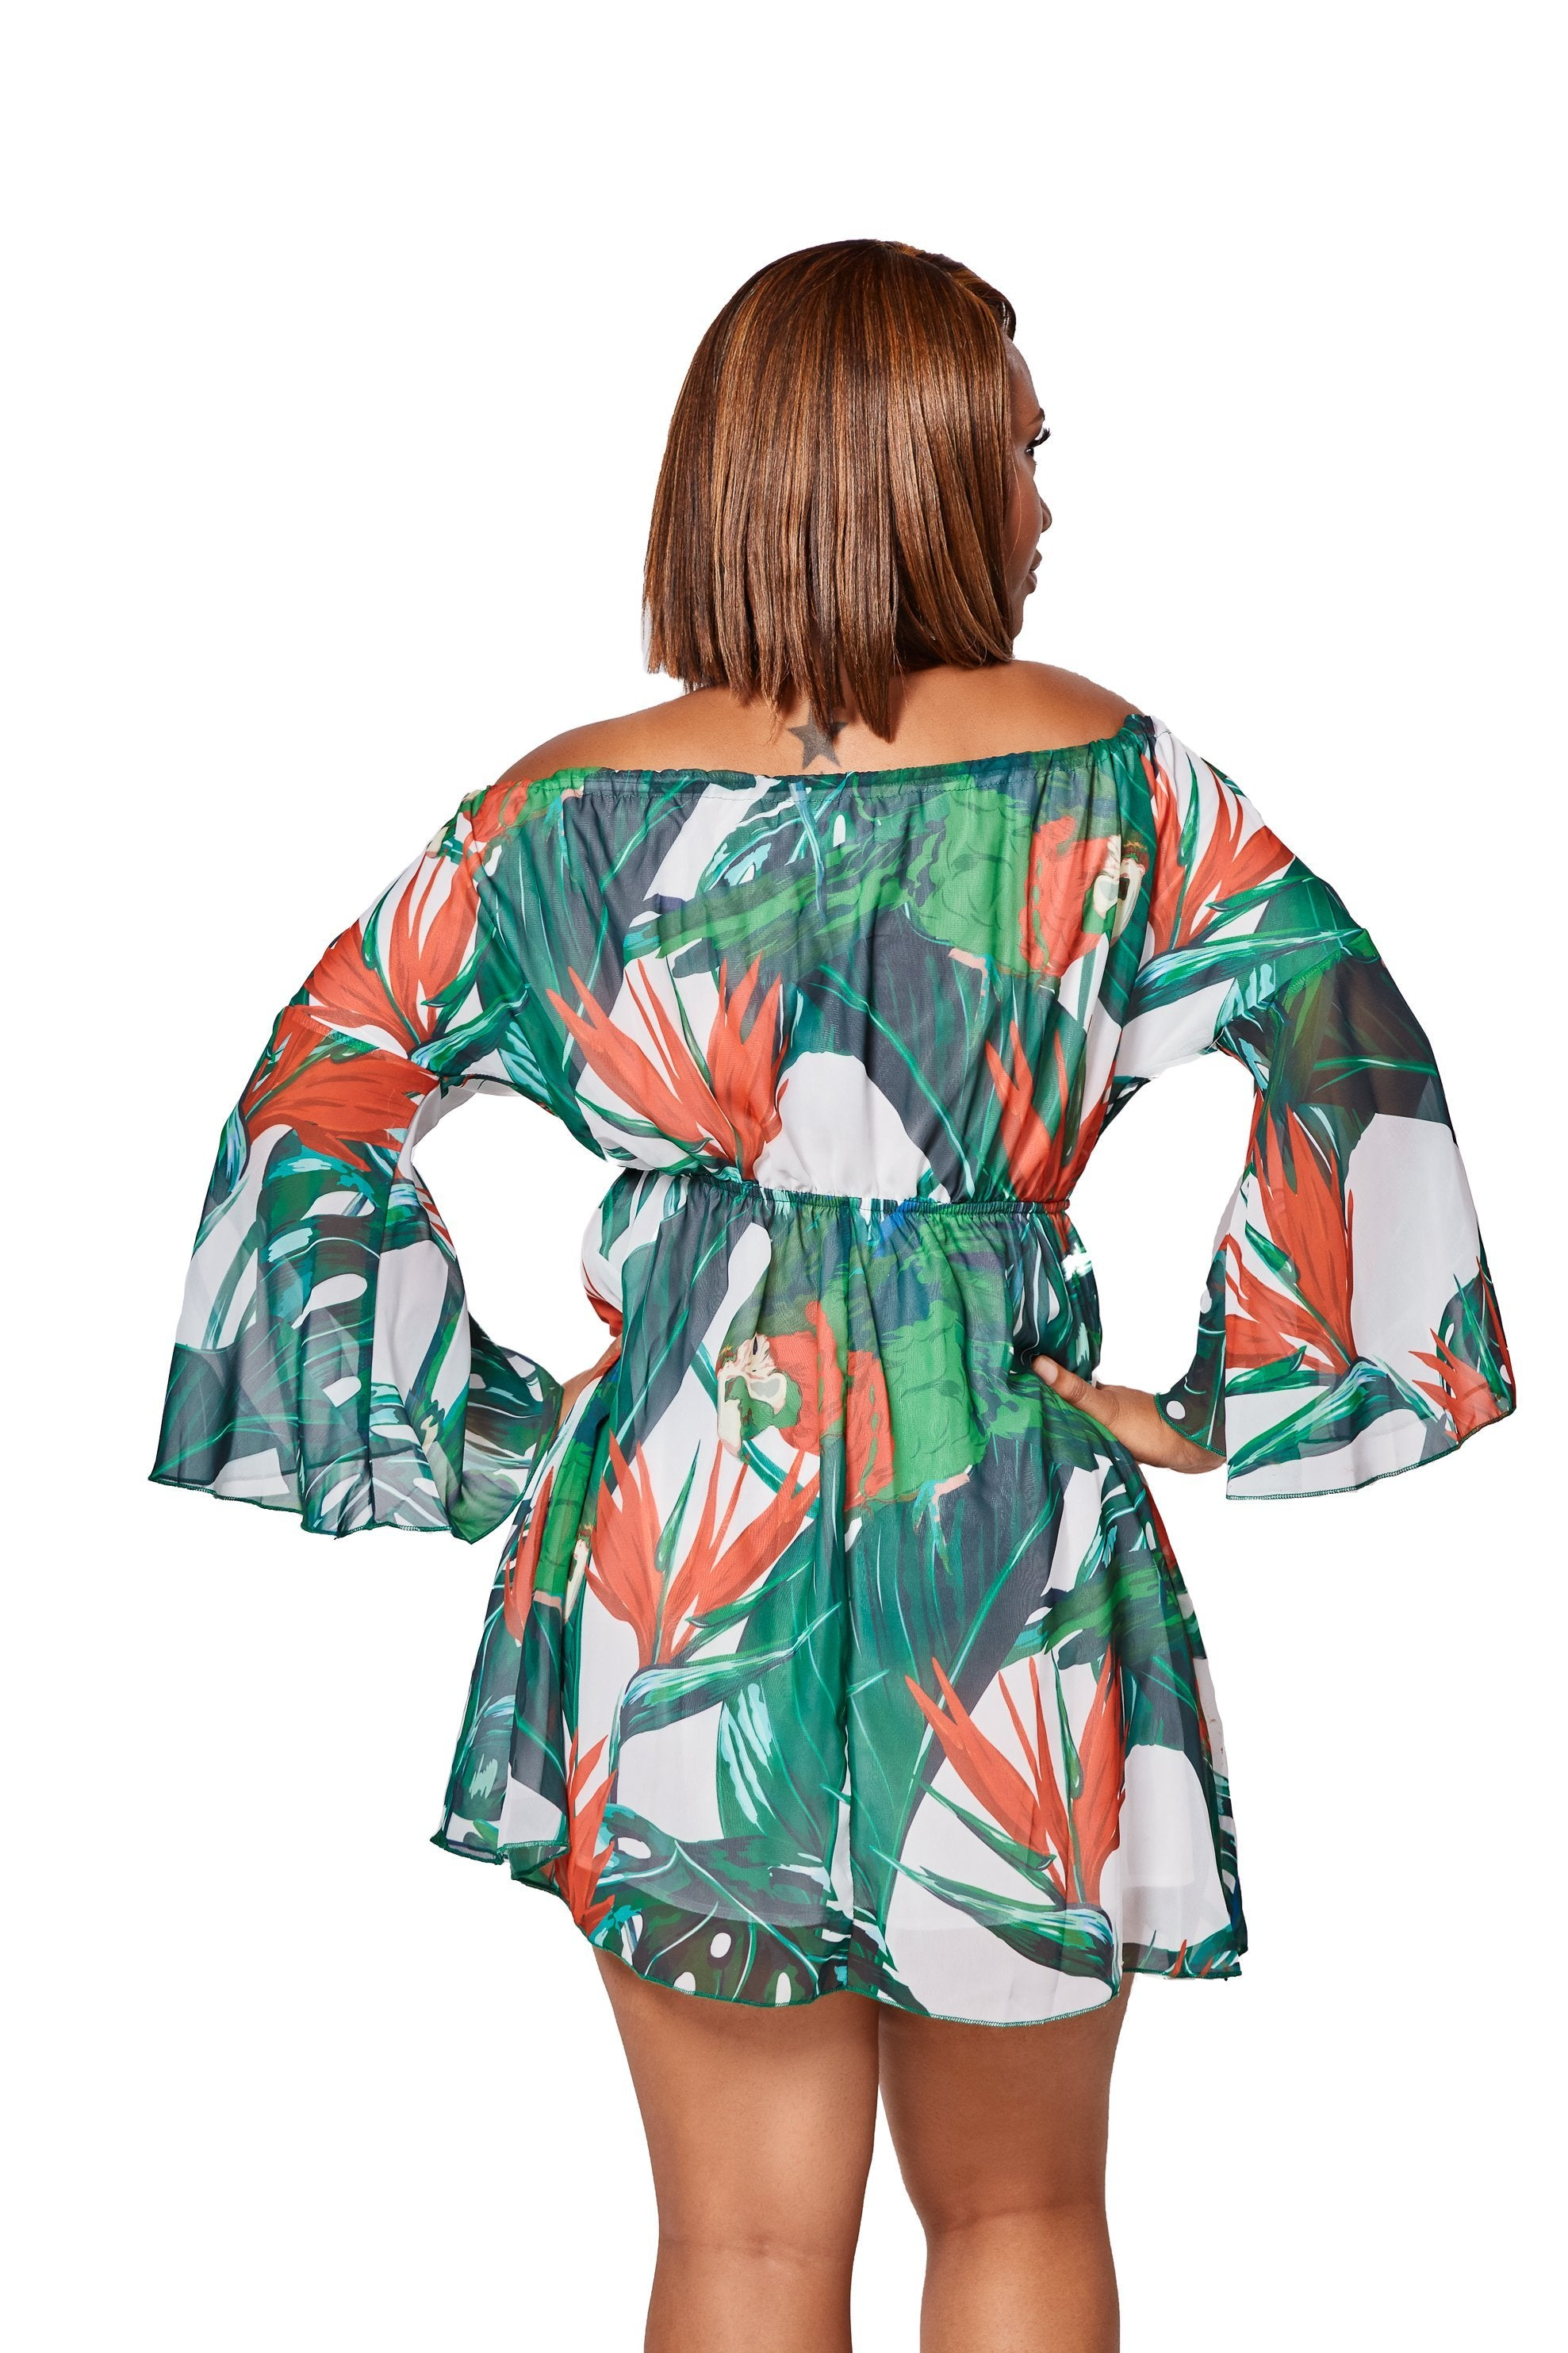 The Amazona Romper Dress